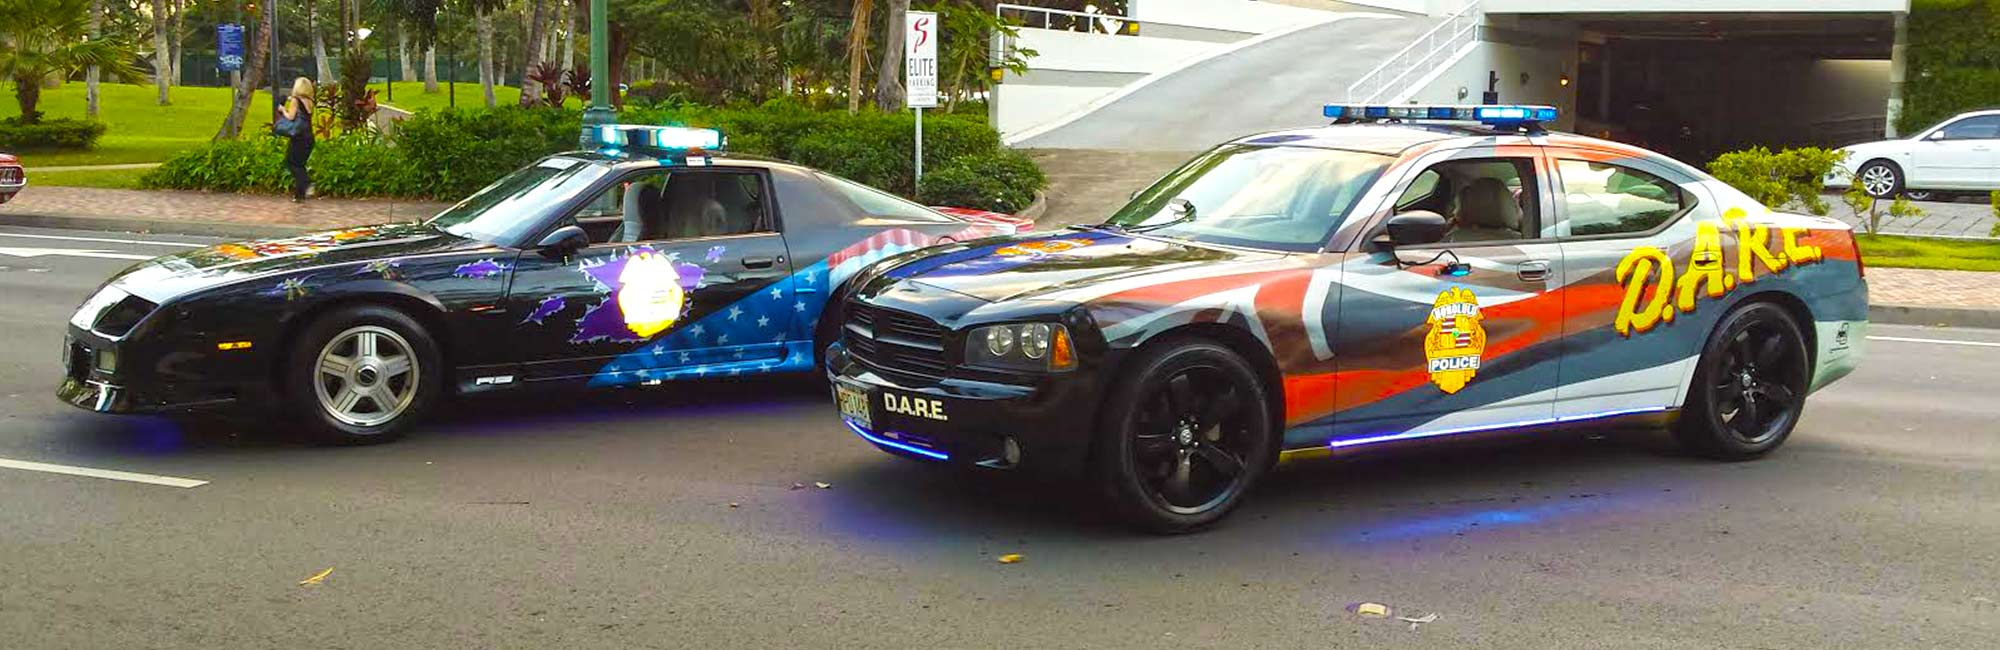 image of Oahu D.A.R.E. cars